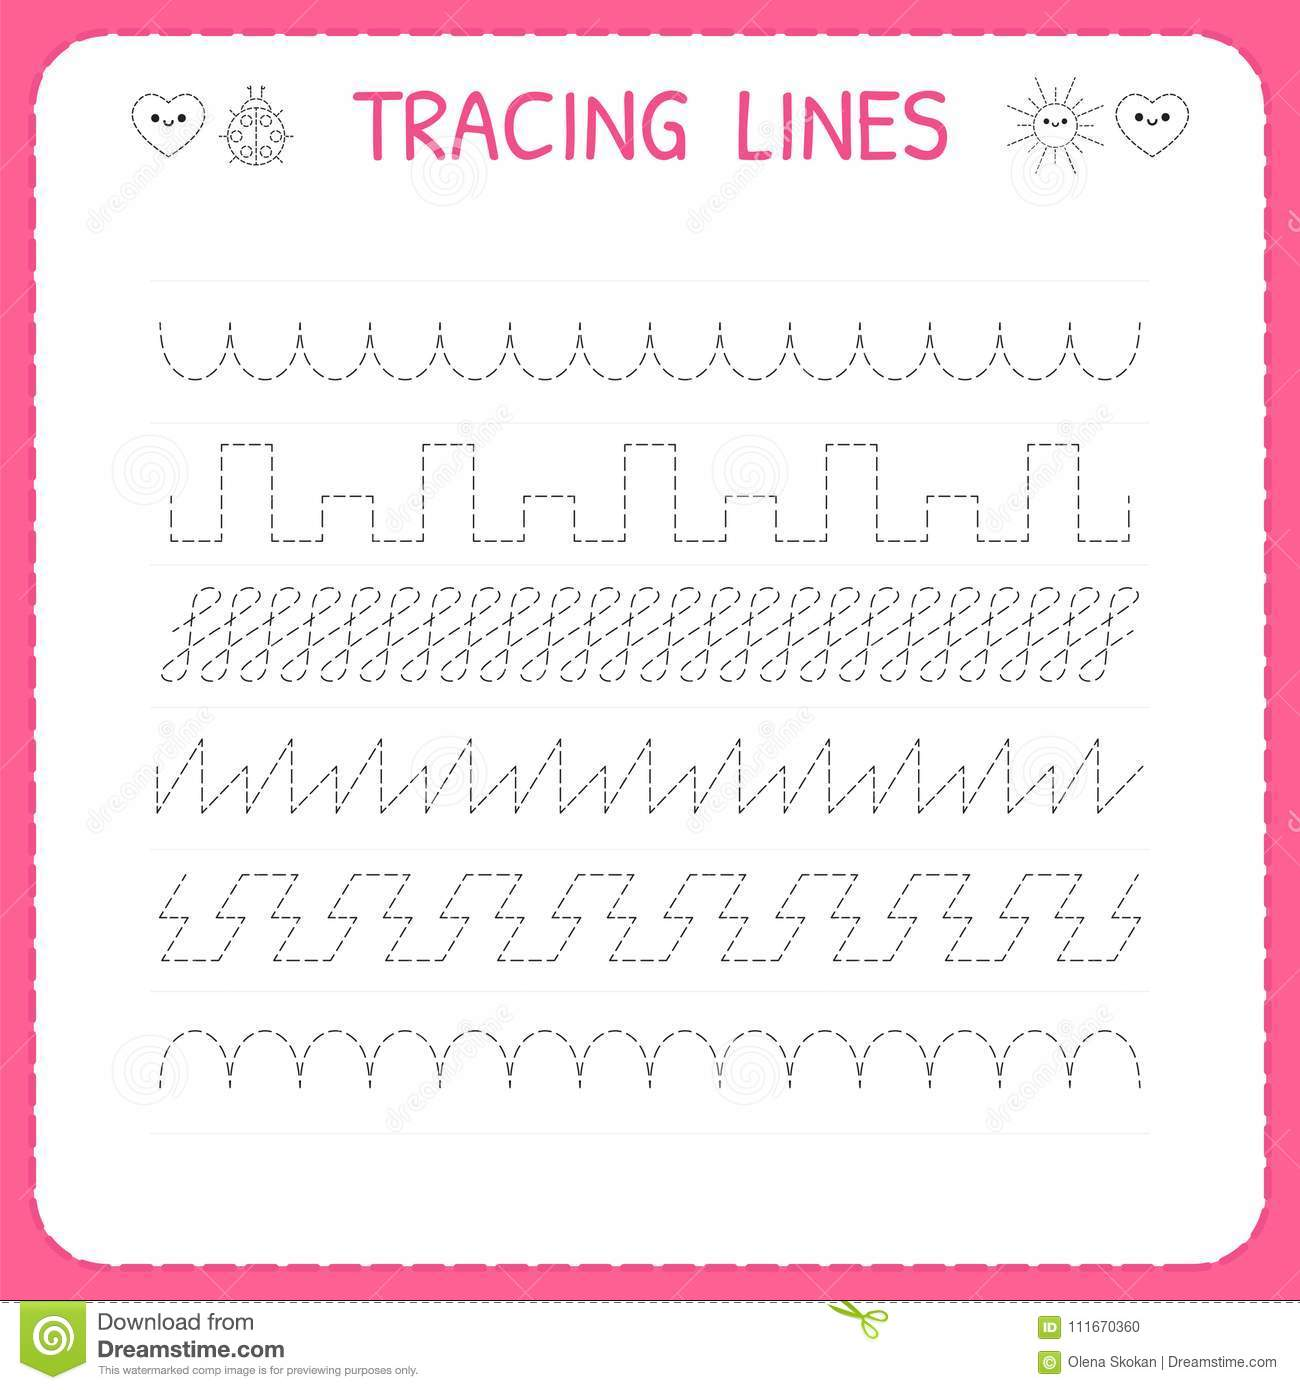 Trace Line Worksheet For Kids Trace The Pattern Working Pages For Children Preschool Or